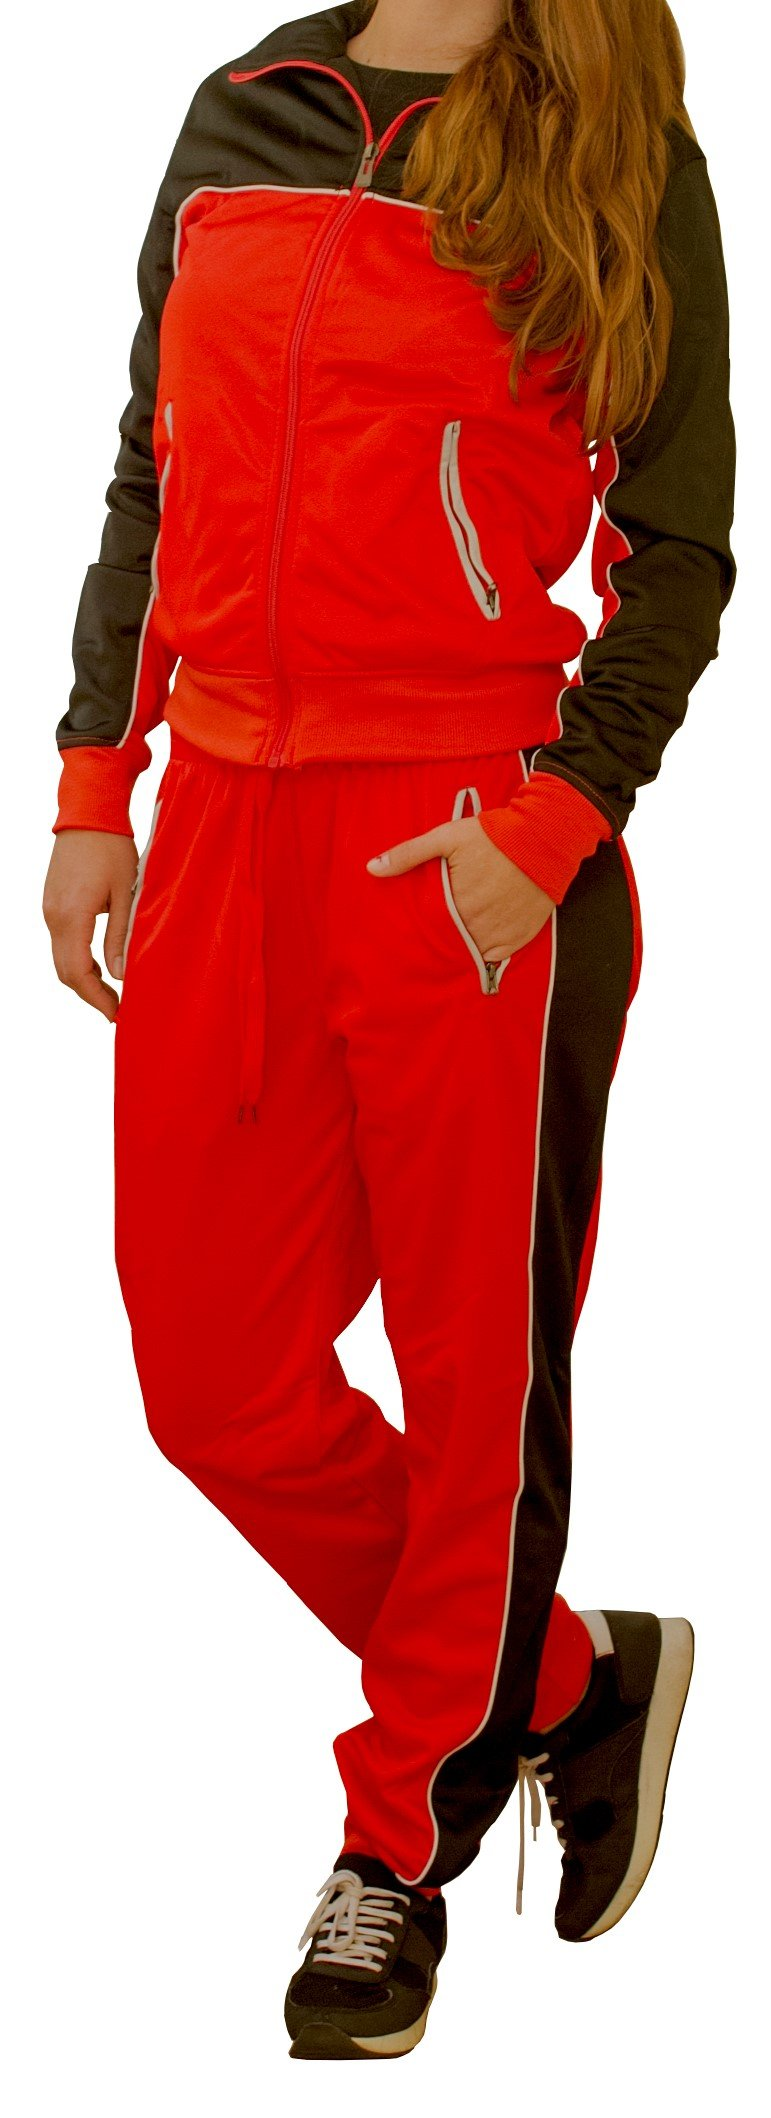 Women Two Tone Activewear Sports Jogger Track Set Gym Outfit (Red/Black, 2XL)